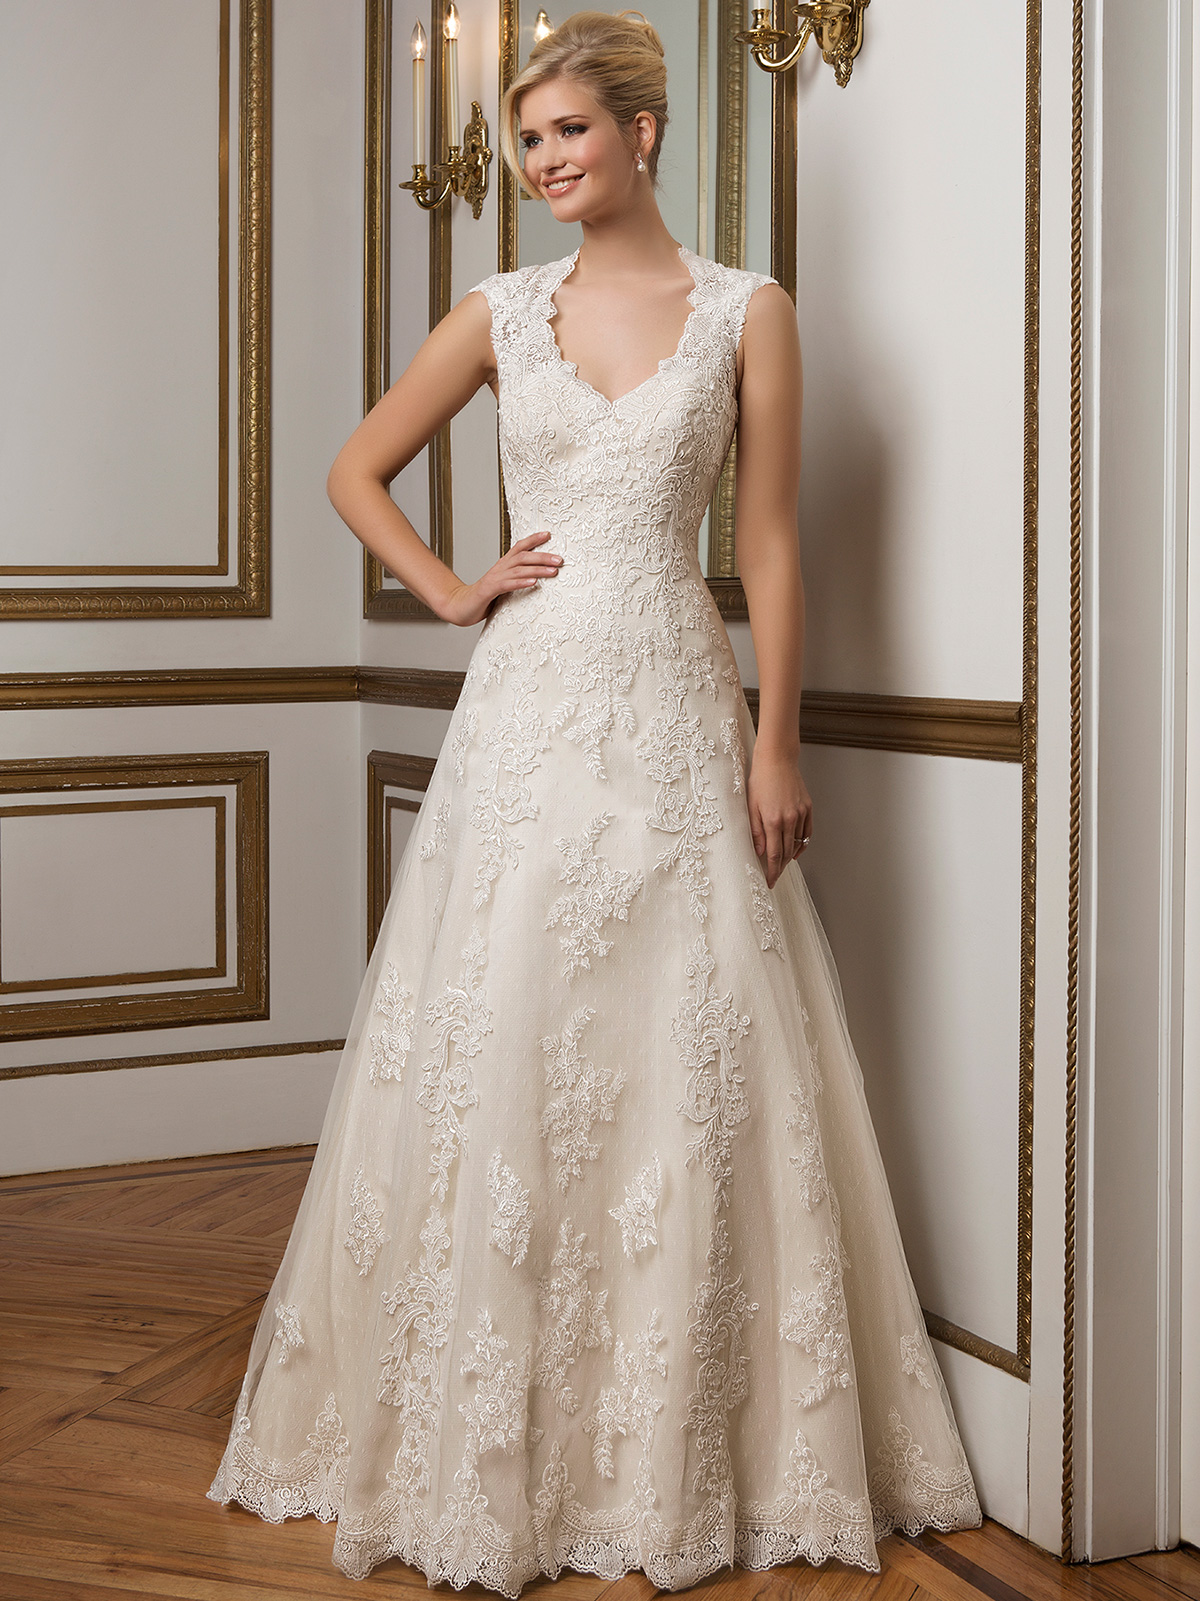 Justin Alexander 8822 Queen Anne Neckline Wedding Dress